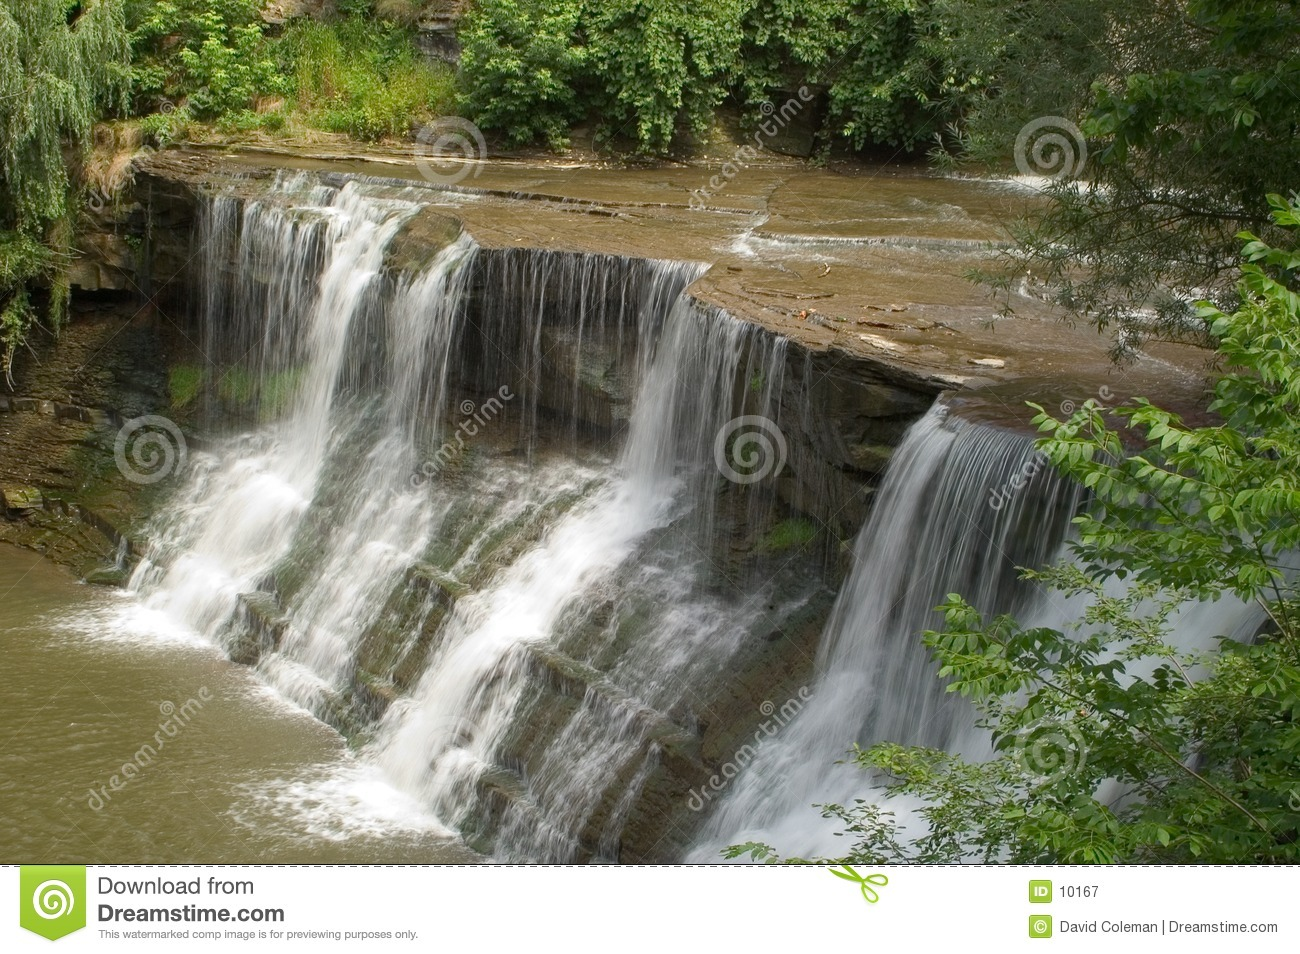 Waterfall, sharp water